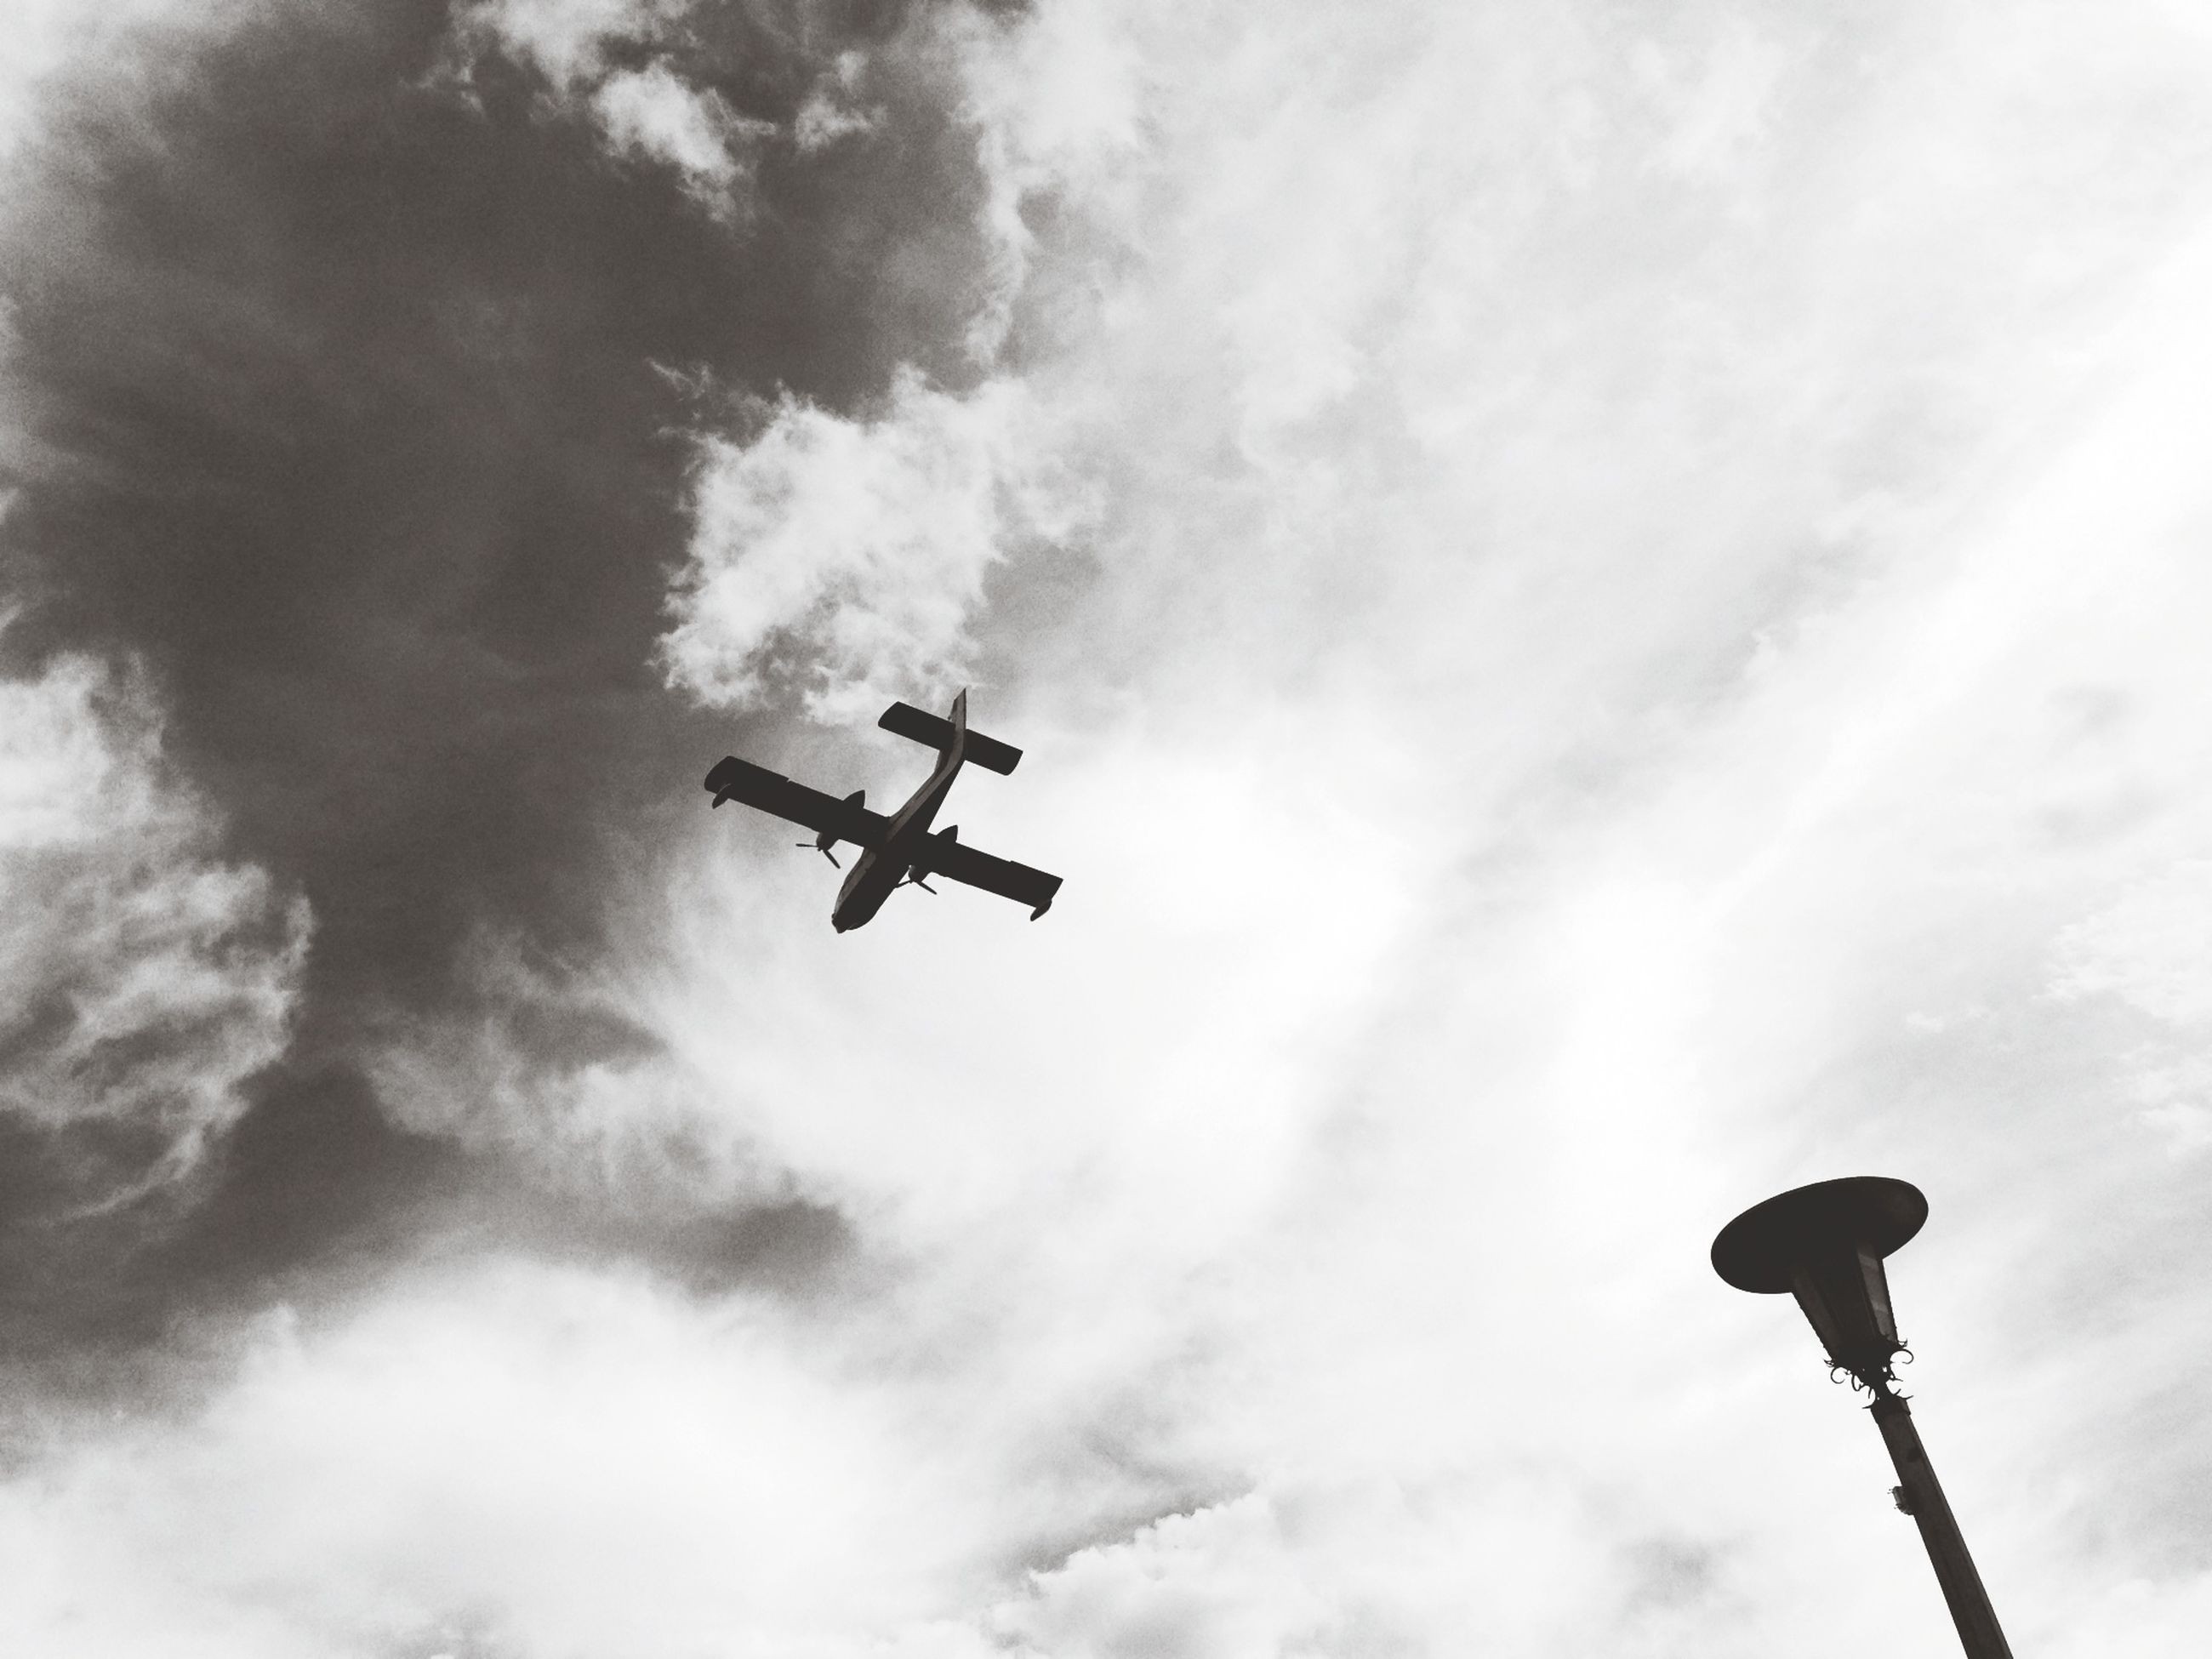 low angle view, airplane, air vehicle, transportation, sky, mode of transport, cloud - sky, flying, street light, cloudy, lighting equipment, mid-air, travel, public transportation, on the move, day, cloud, outdoors, commercial airplane, military airplane